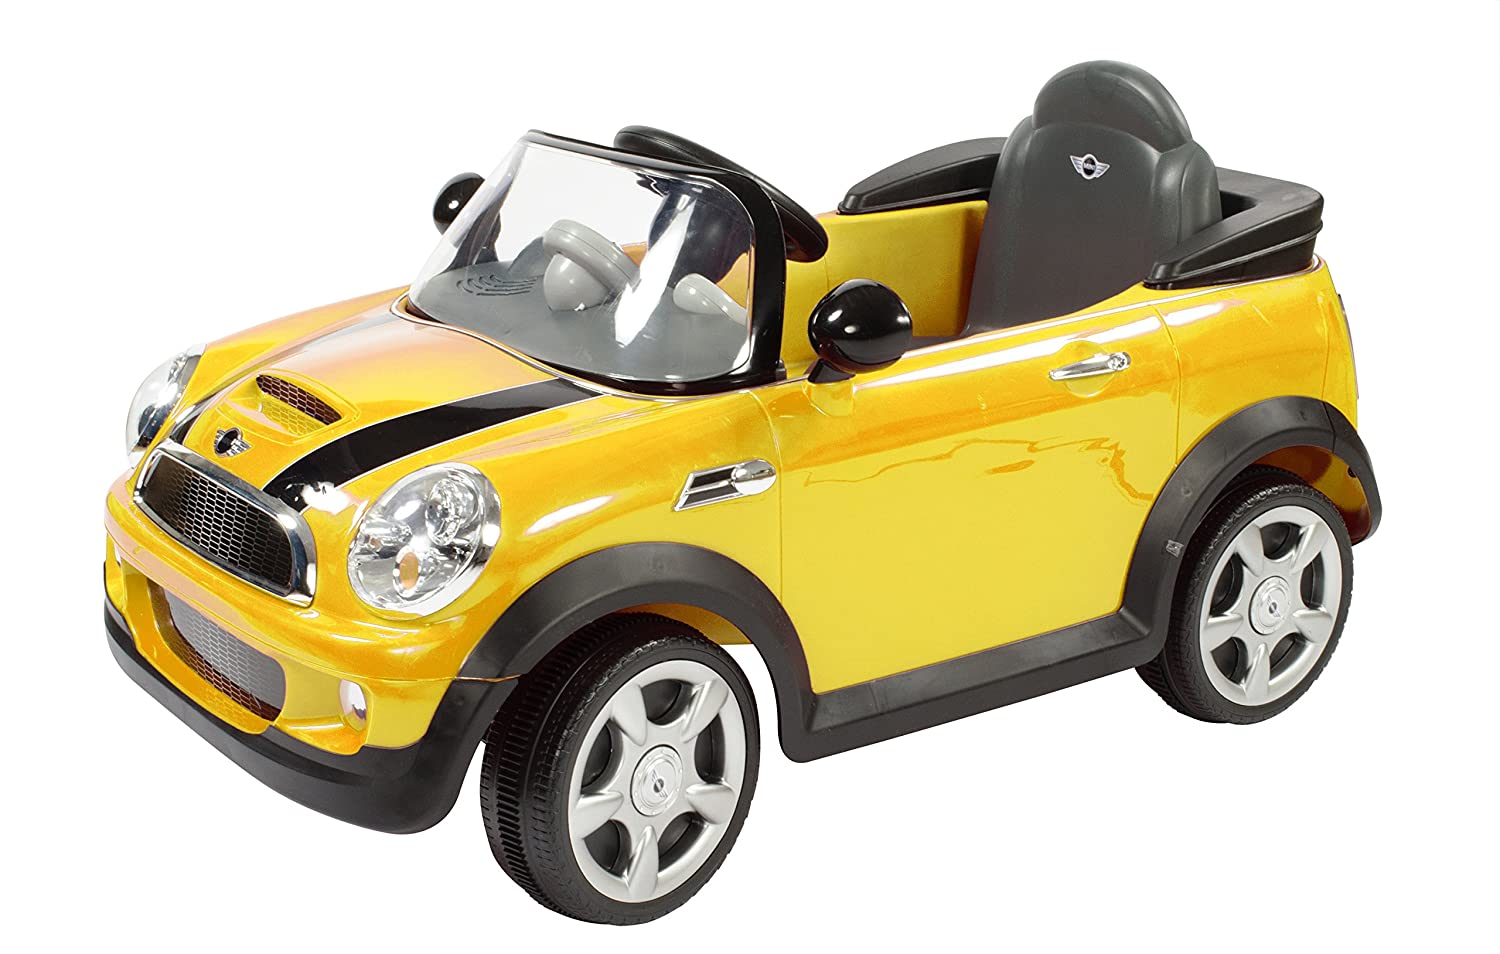 Toy Cars For Toddlers : Electric cars for kids to ride mini cooper volt battery